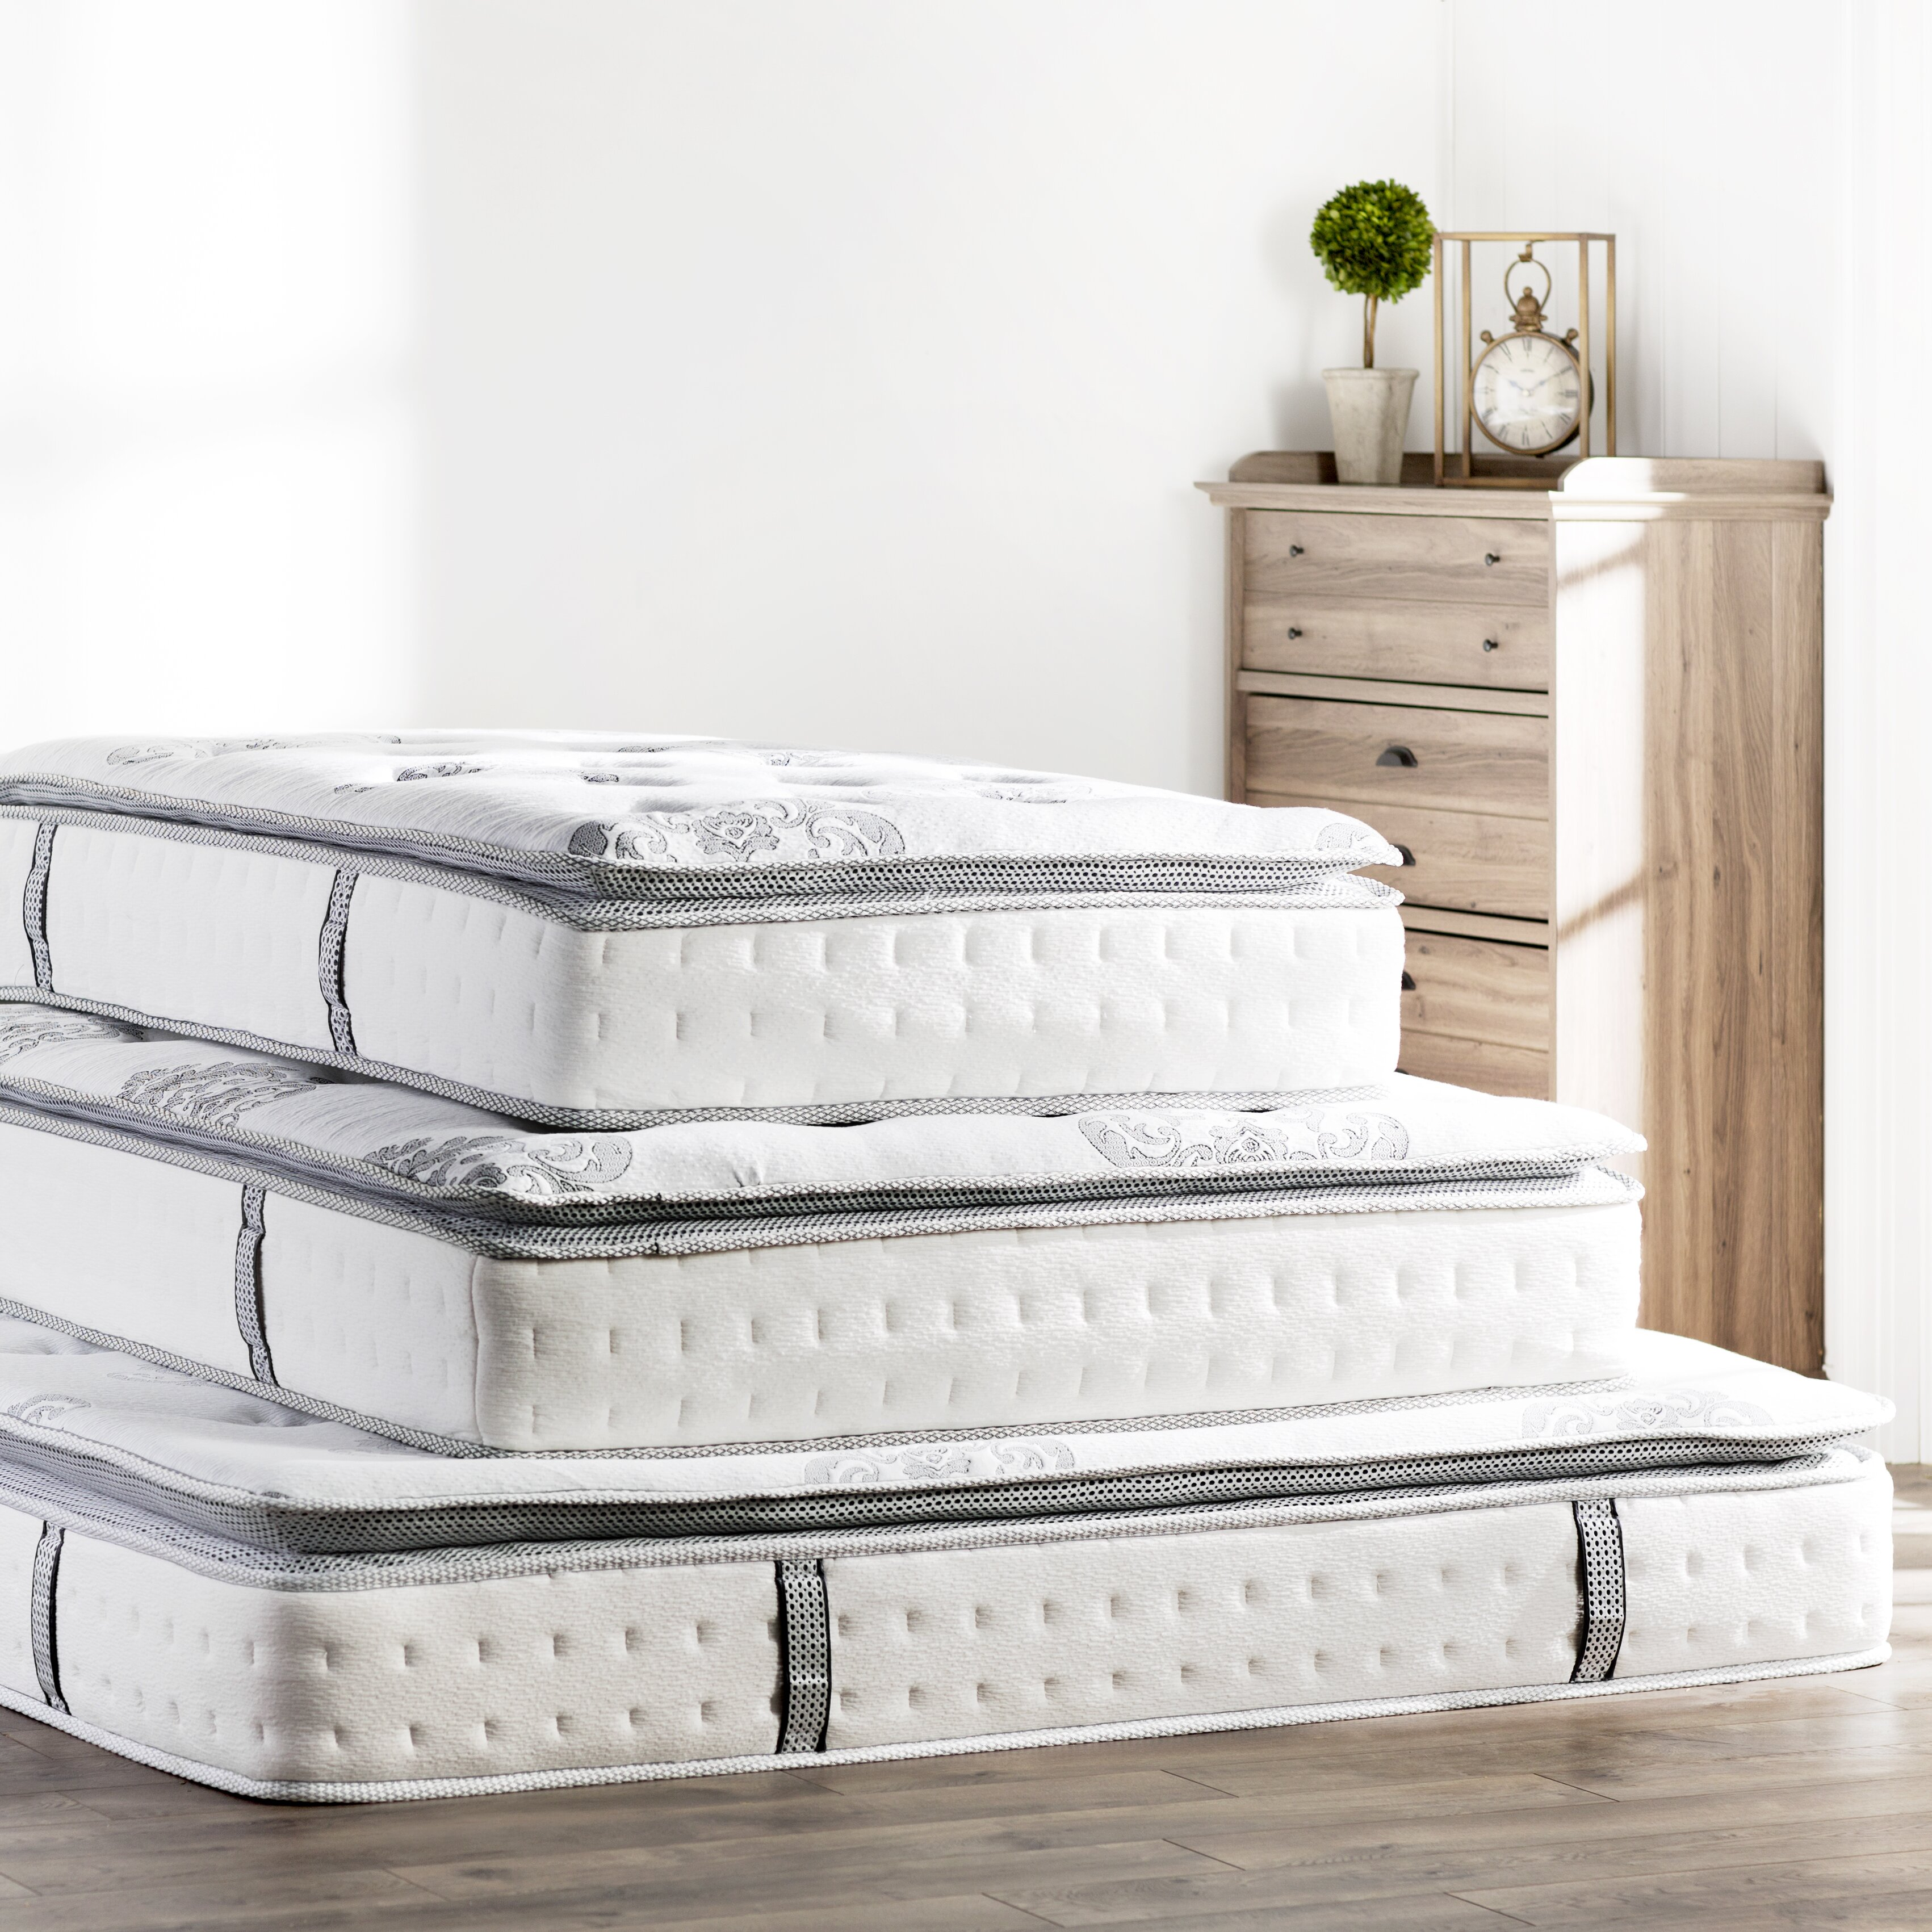 by brand by brand brands we carry the following best rated mattress